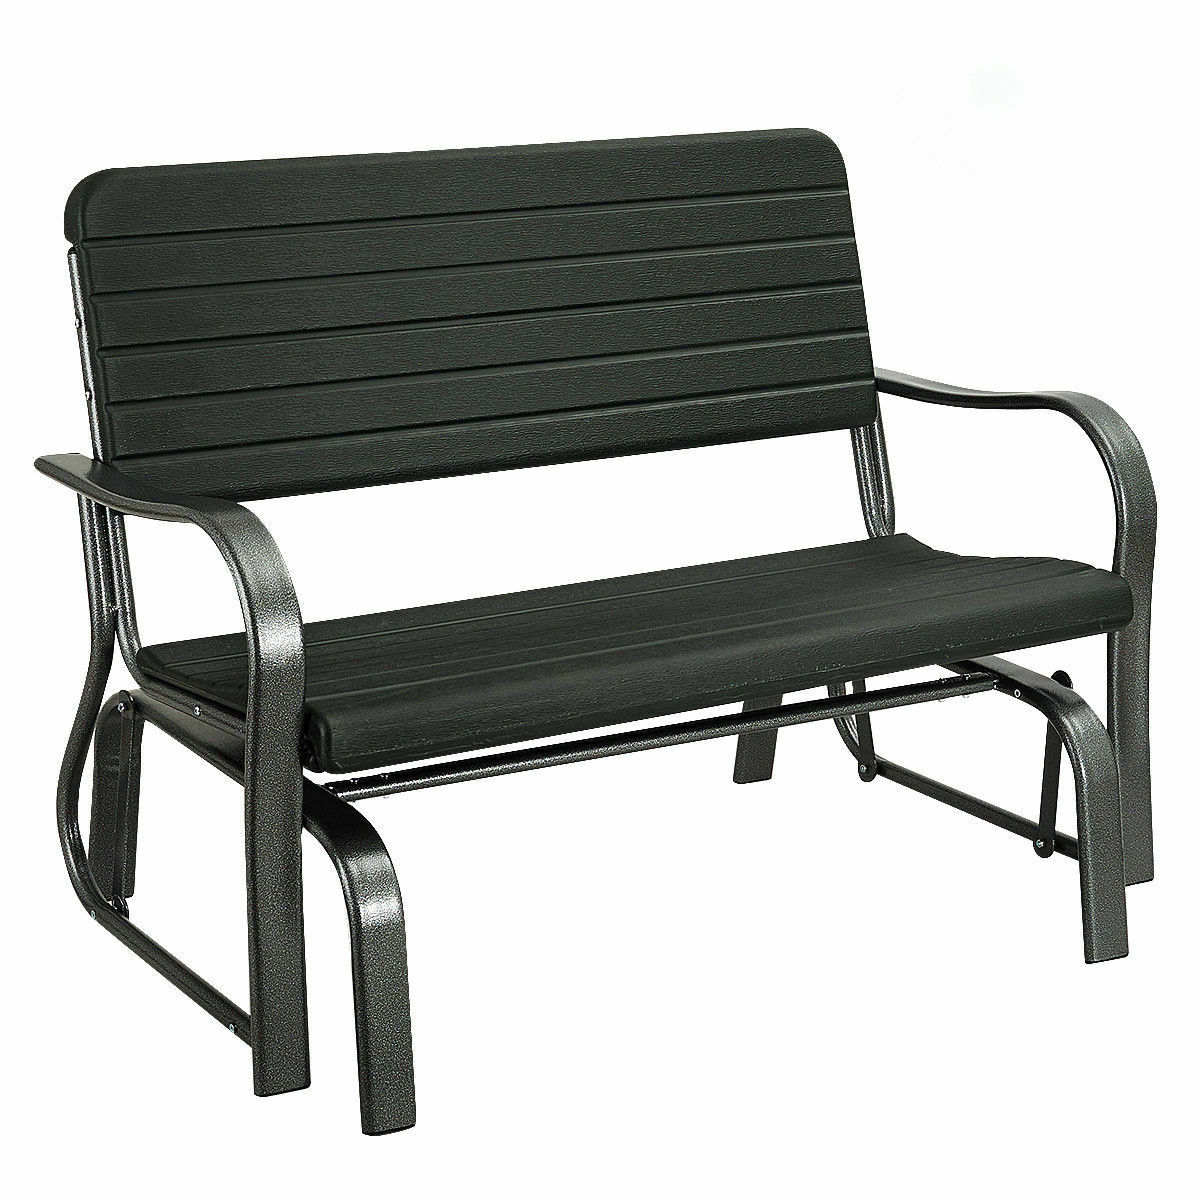 Outdoor Patio Swing Porch Rocker Glider Bench Loveseat Garden Seat Steel New With Most Recently Released Loveseat Glider Benches (Gallery 6 of 30)